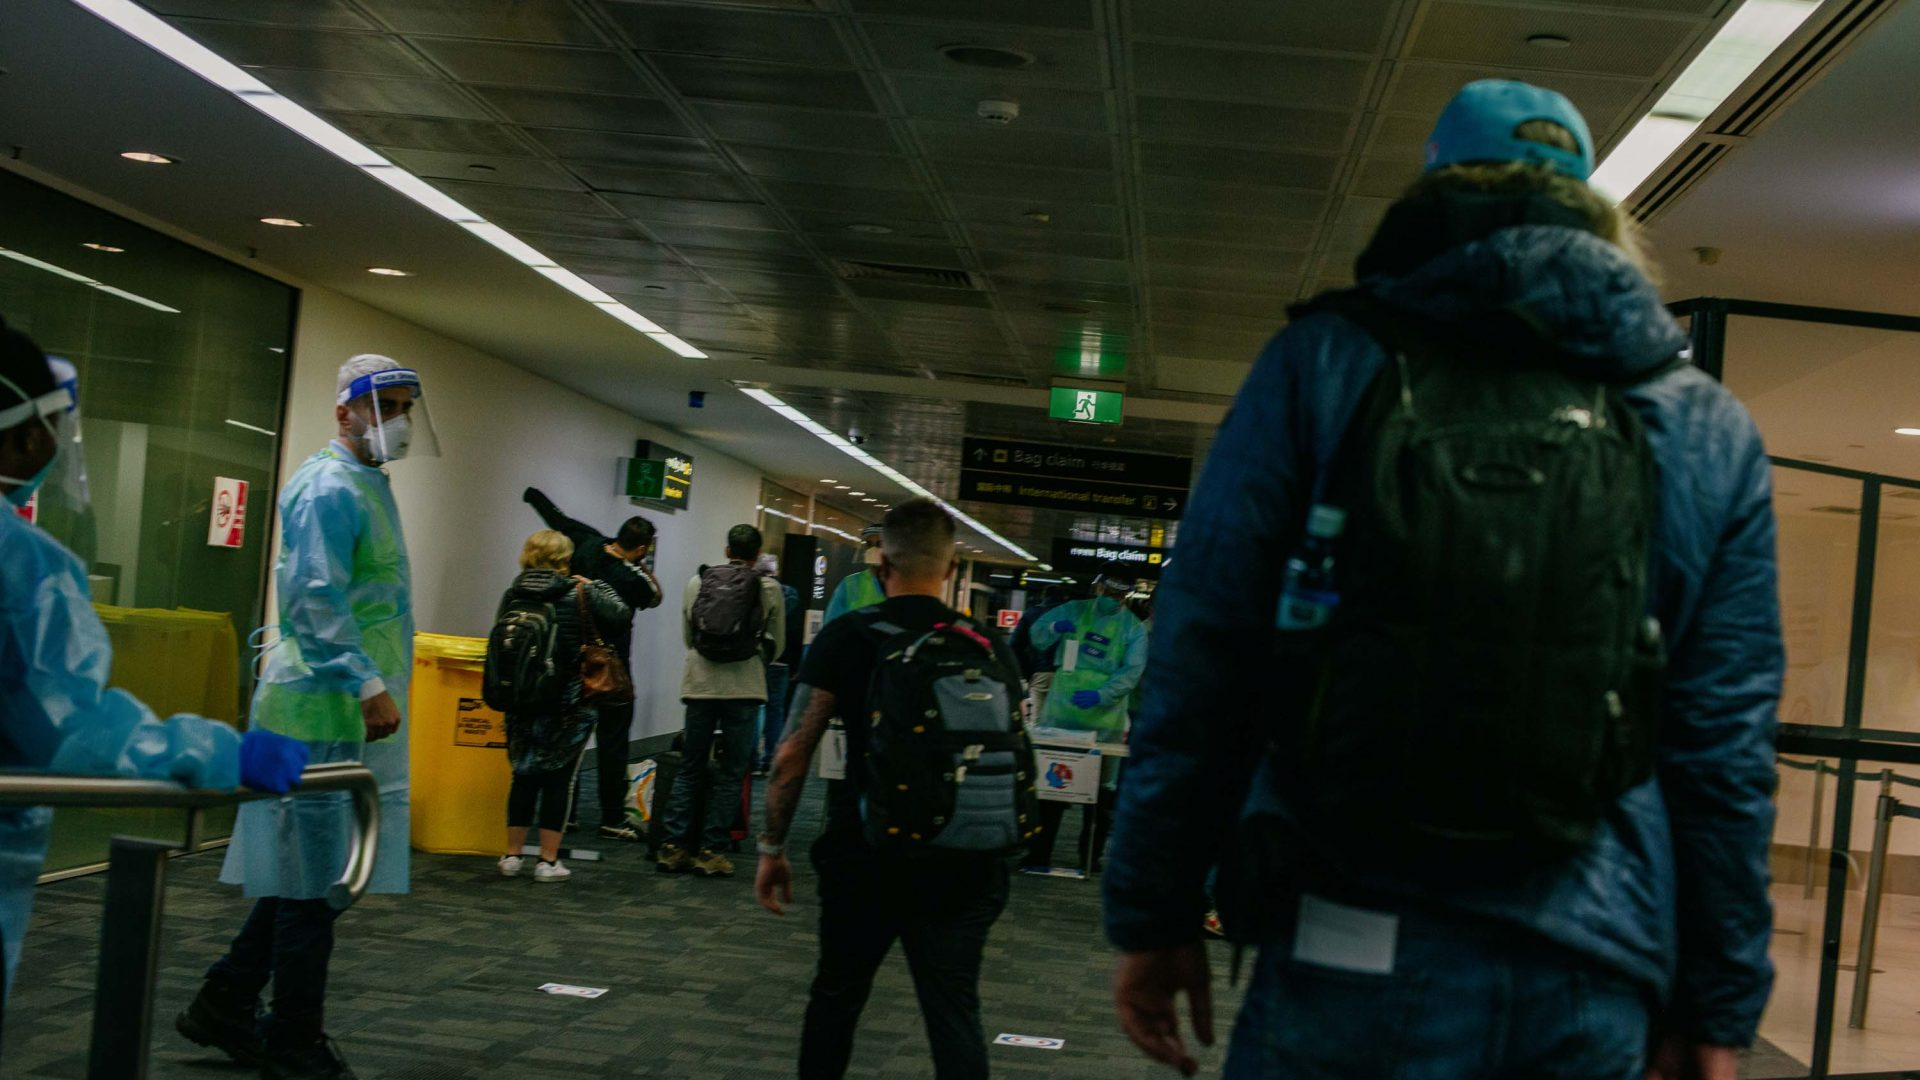 A lone passenger arrives at one of the airport checkpoints.